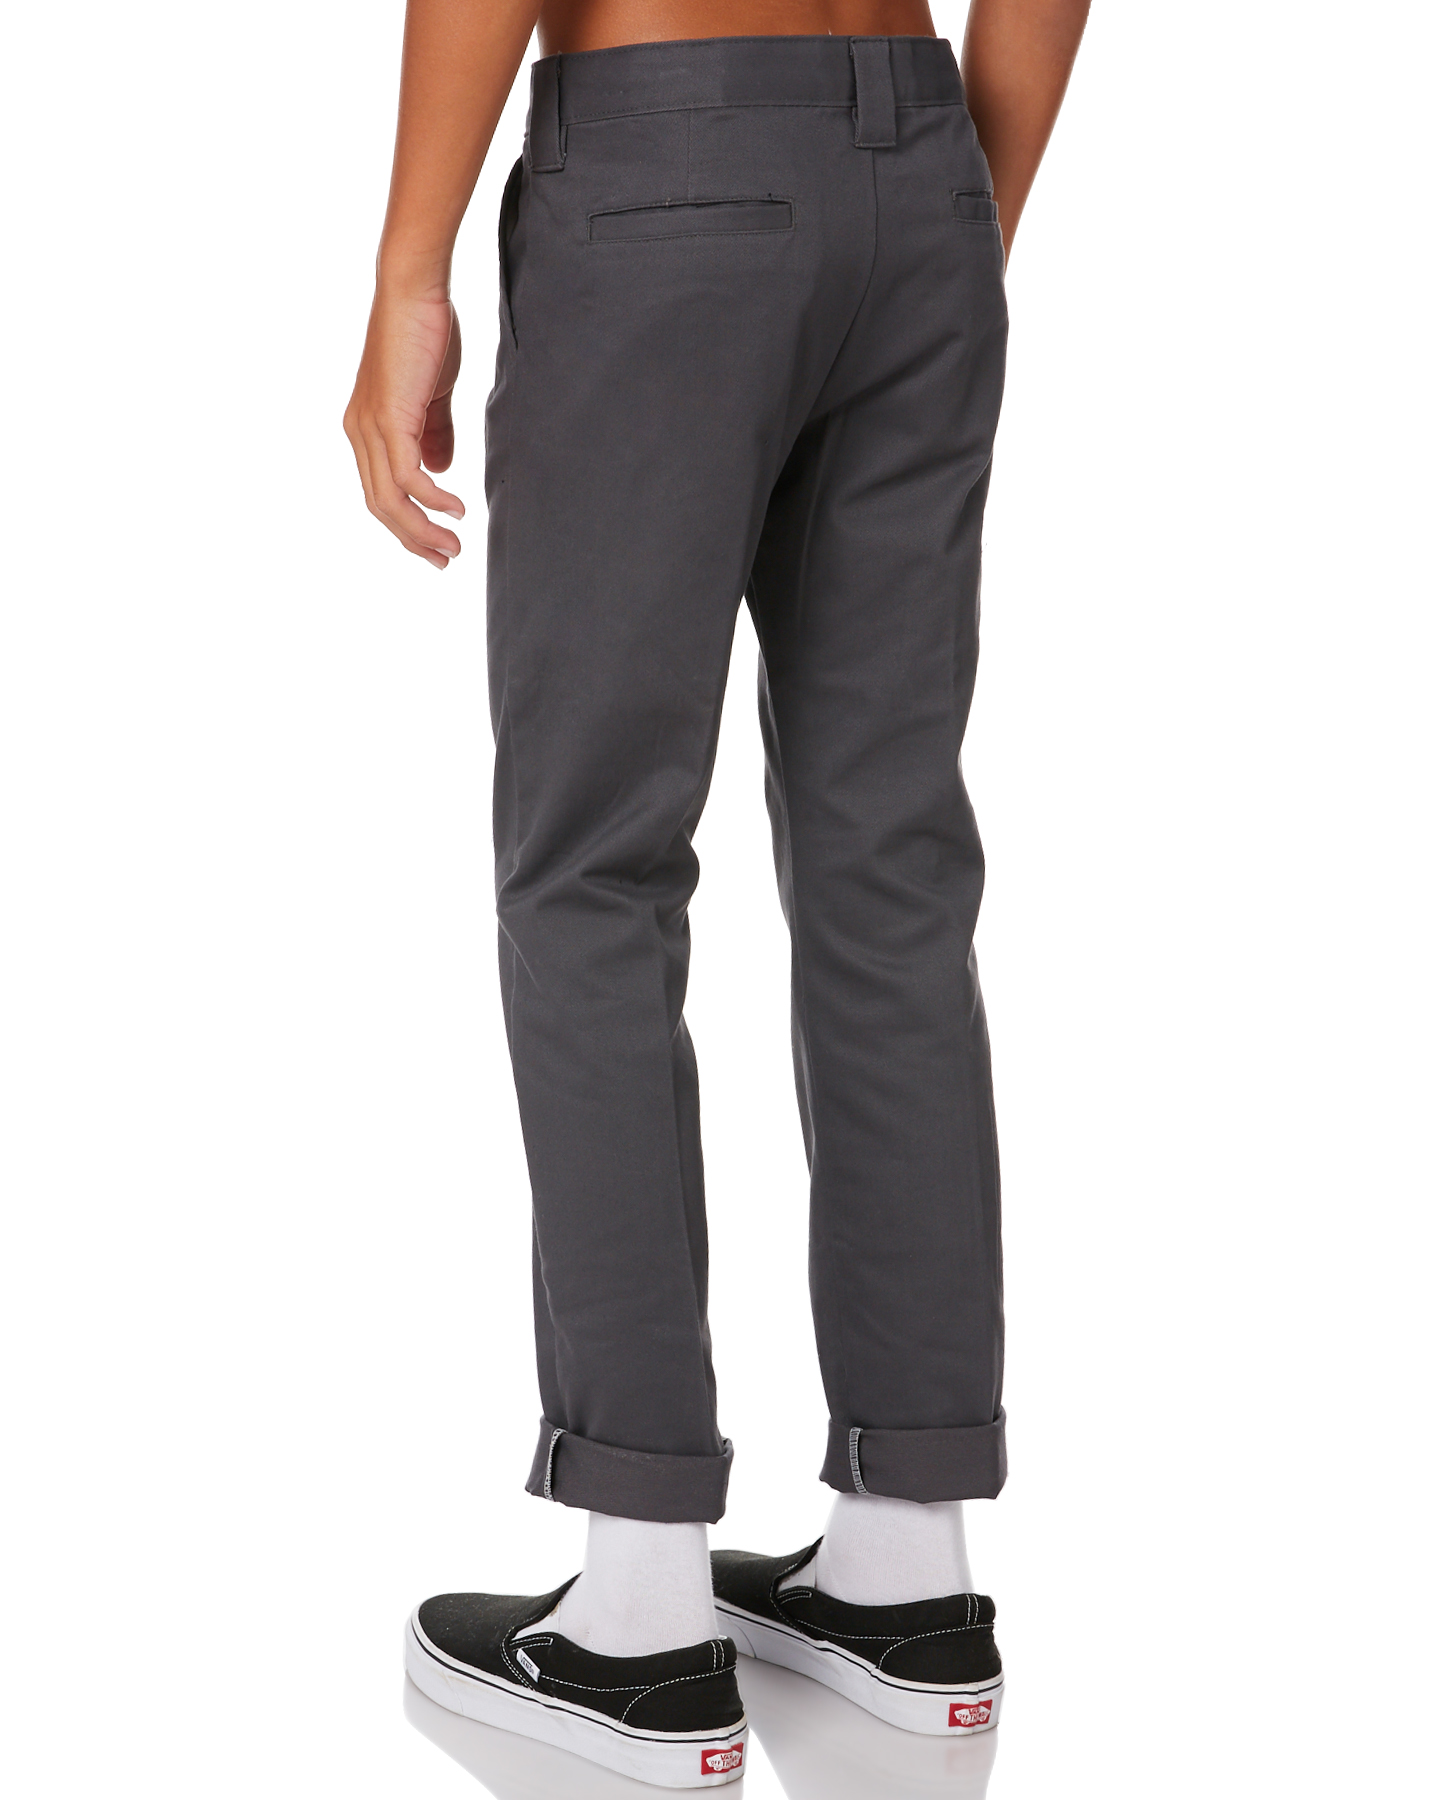 Our boys dress pants by Tallia in a wool blend will let you rest easy without easing up on sophistication. These washable boys trousers are plain front with quarter top pockets and come in Black, Navy, Charcoal, Gray Heather and Khaki.